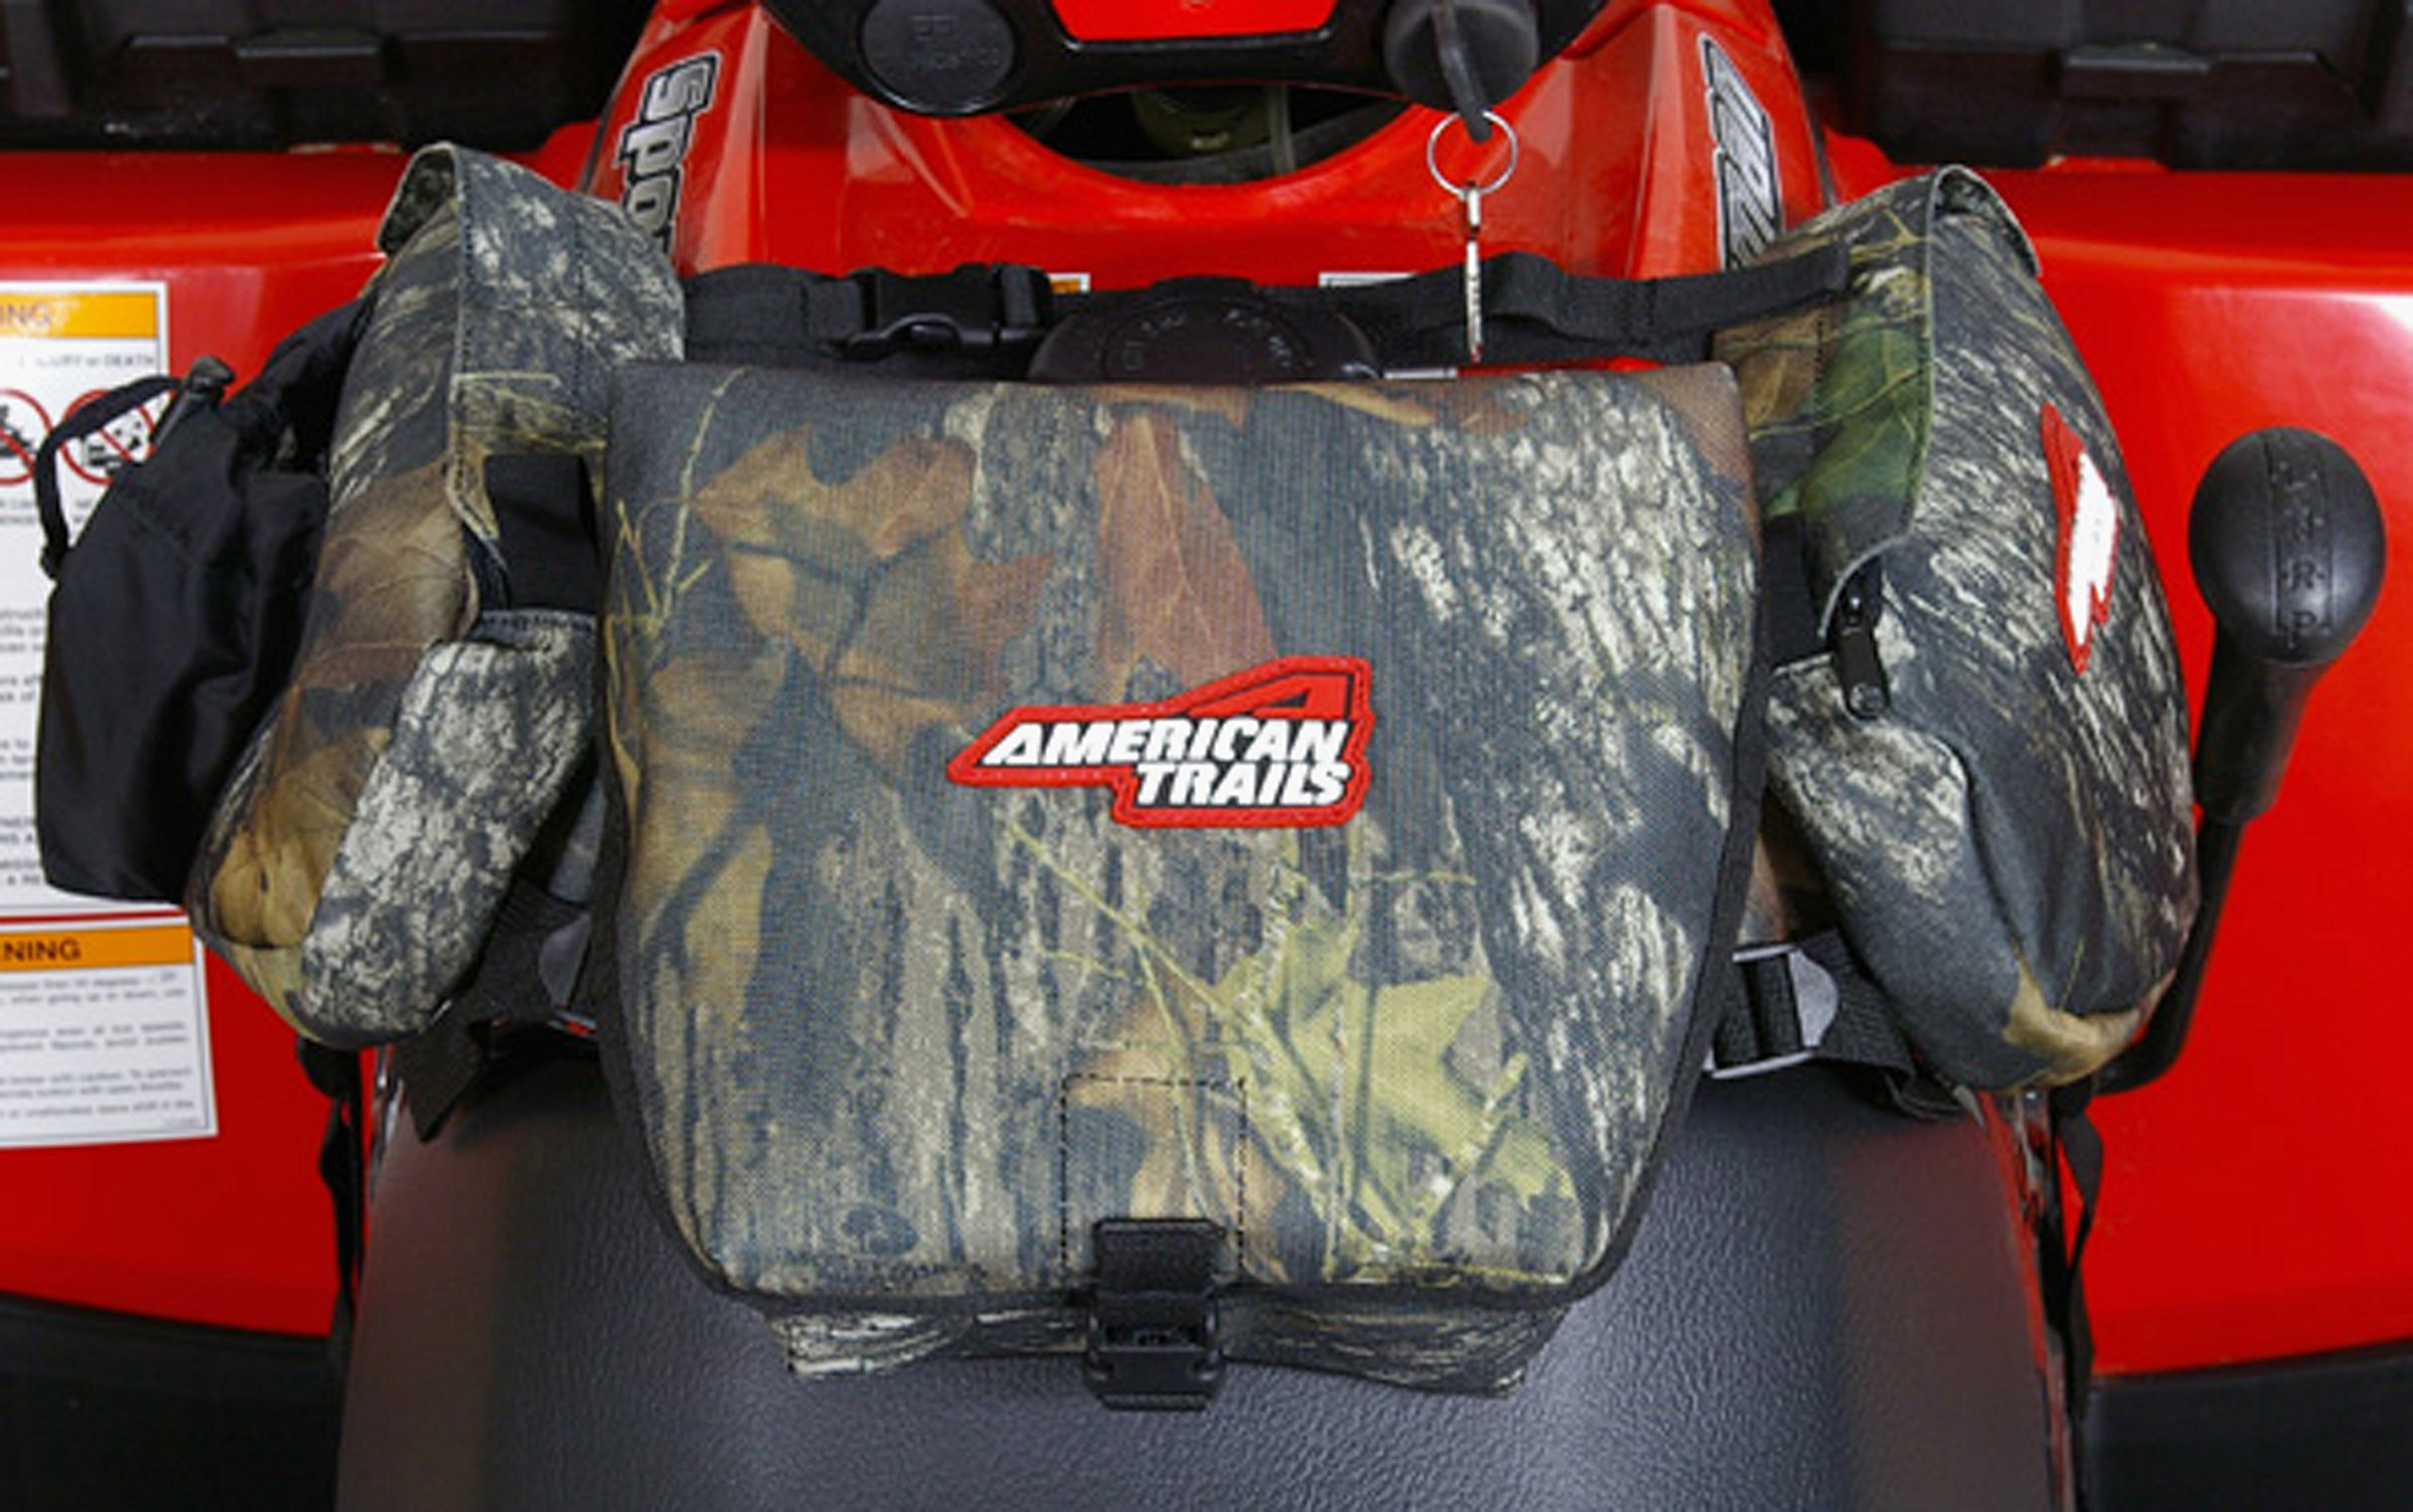 American Trails - ATV Saddle Bag Mossy Oak - Tank Bag Front Accessories Storage Pack Luggage